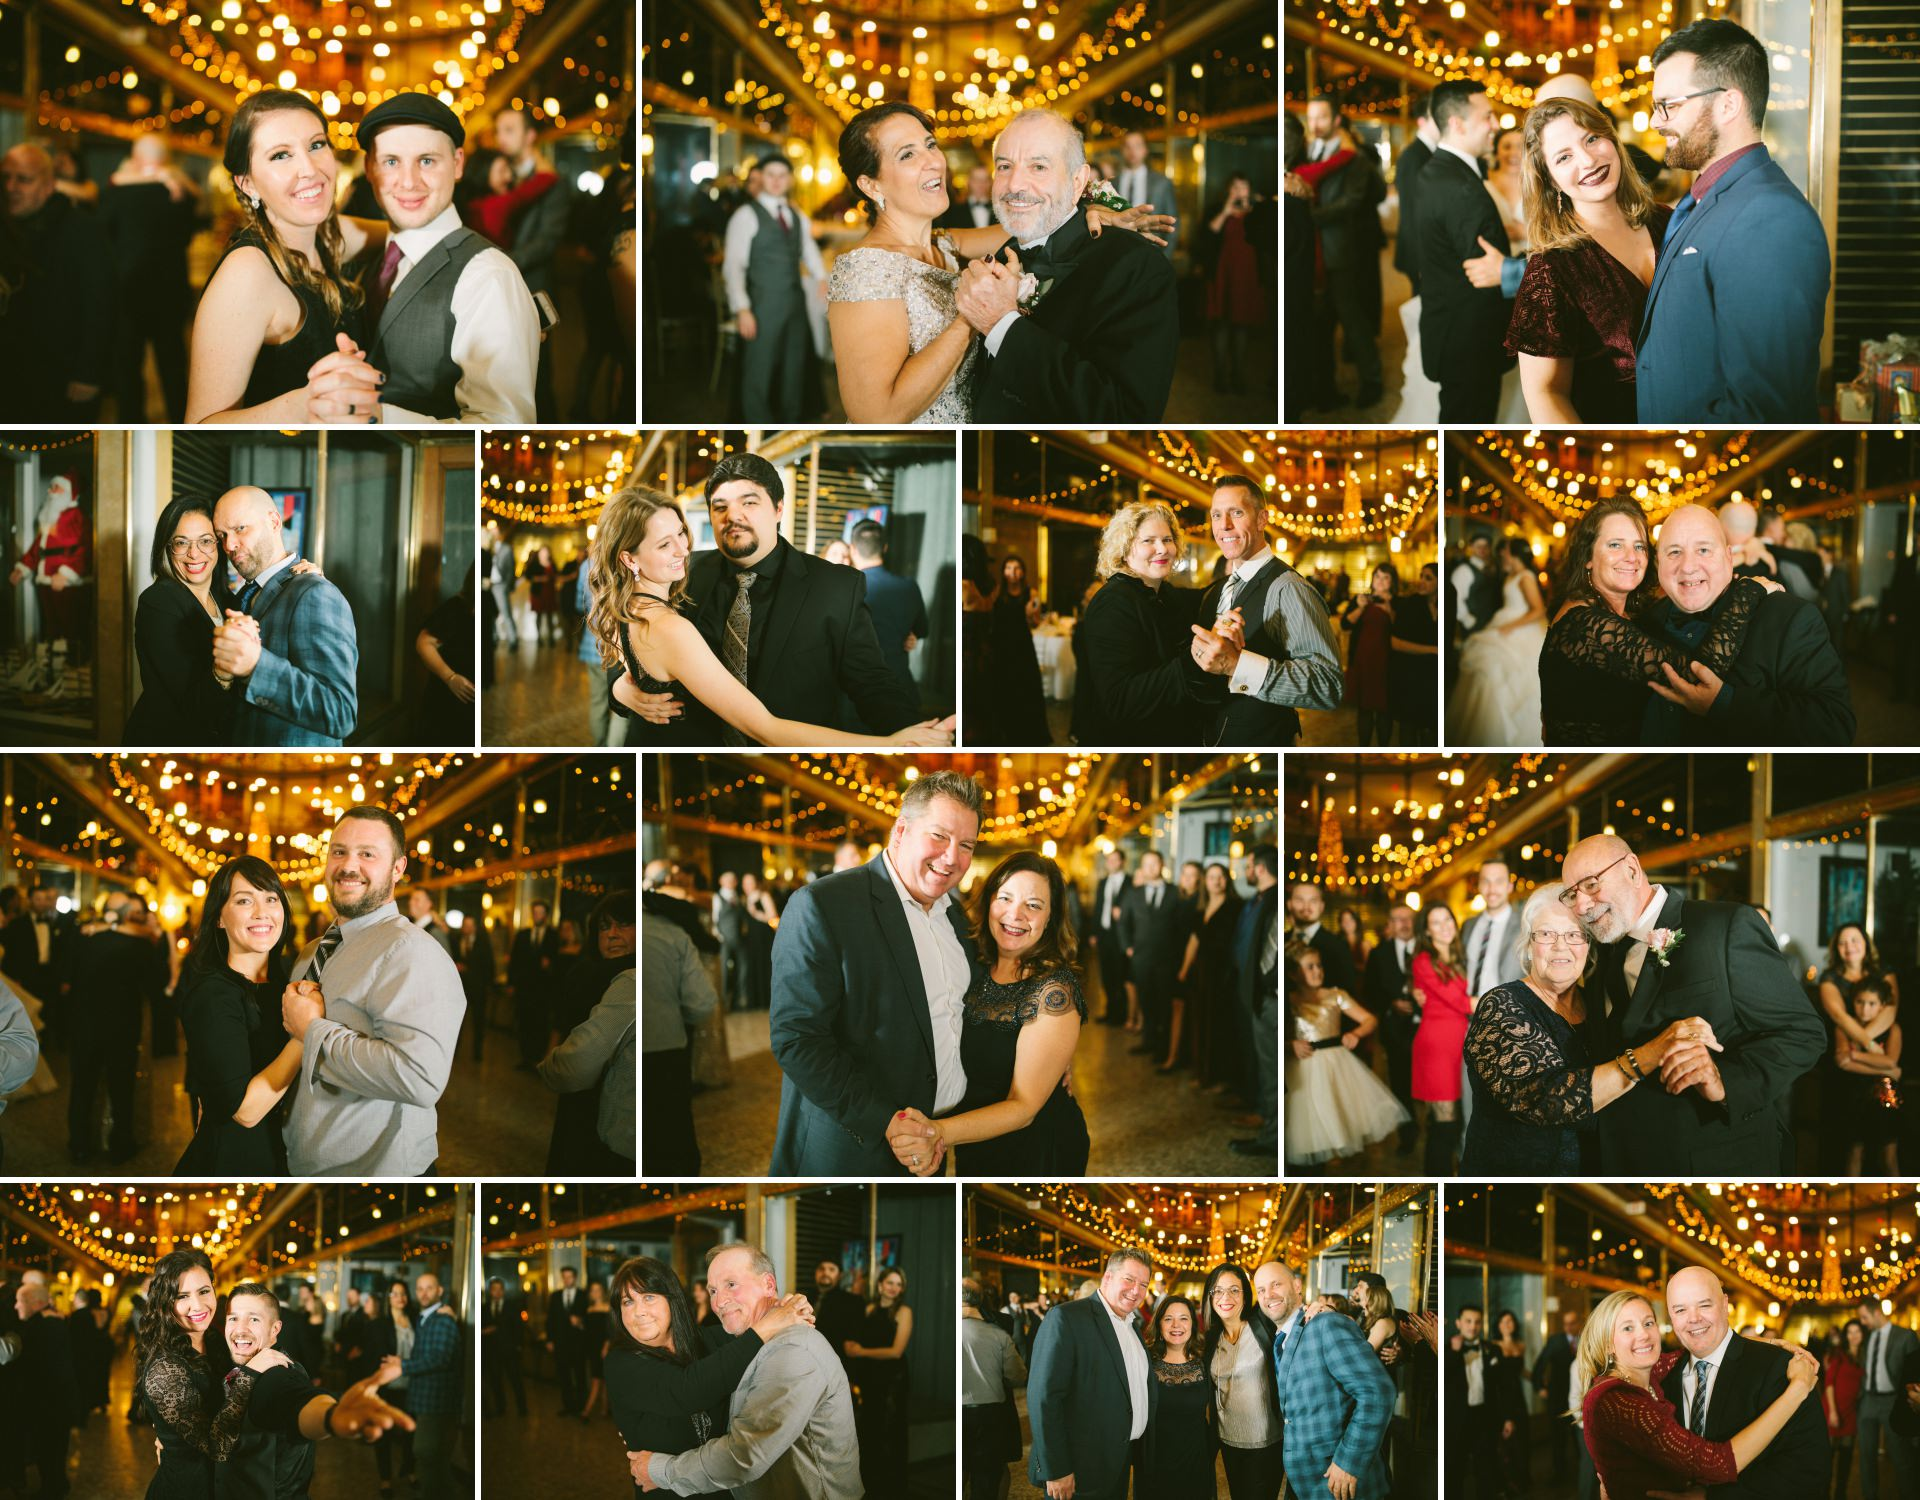 Hyatt Old Arcade Wedding Photographer in Cleveland 2 23.jpg